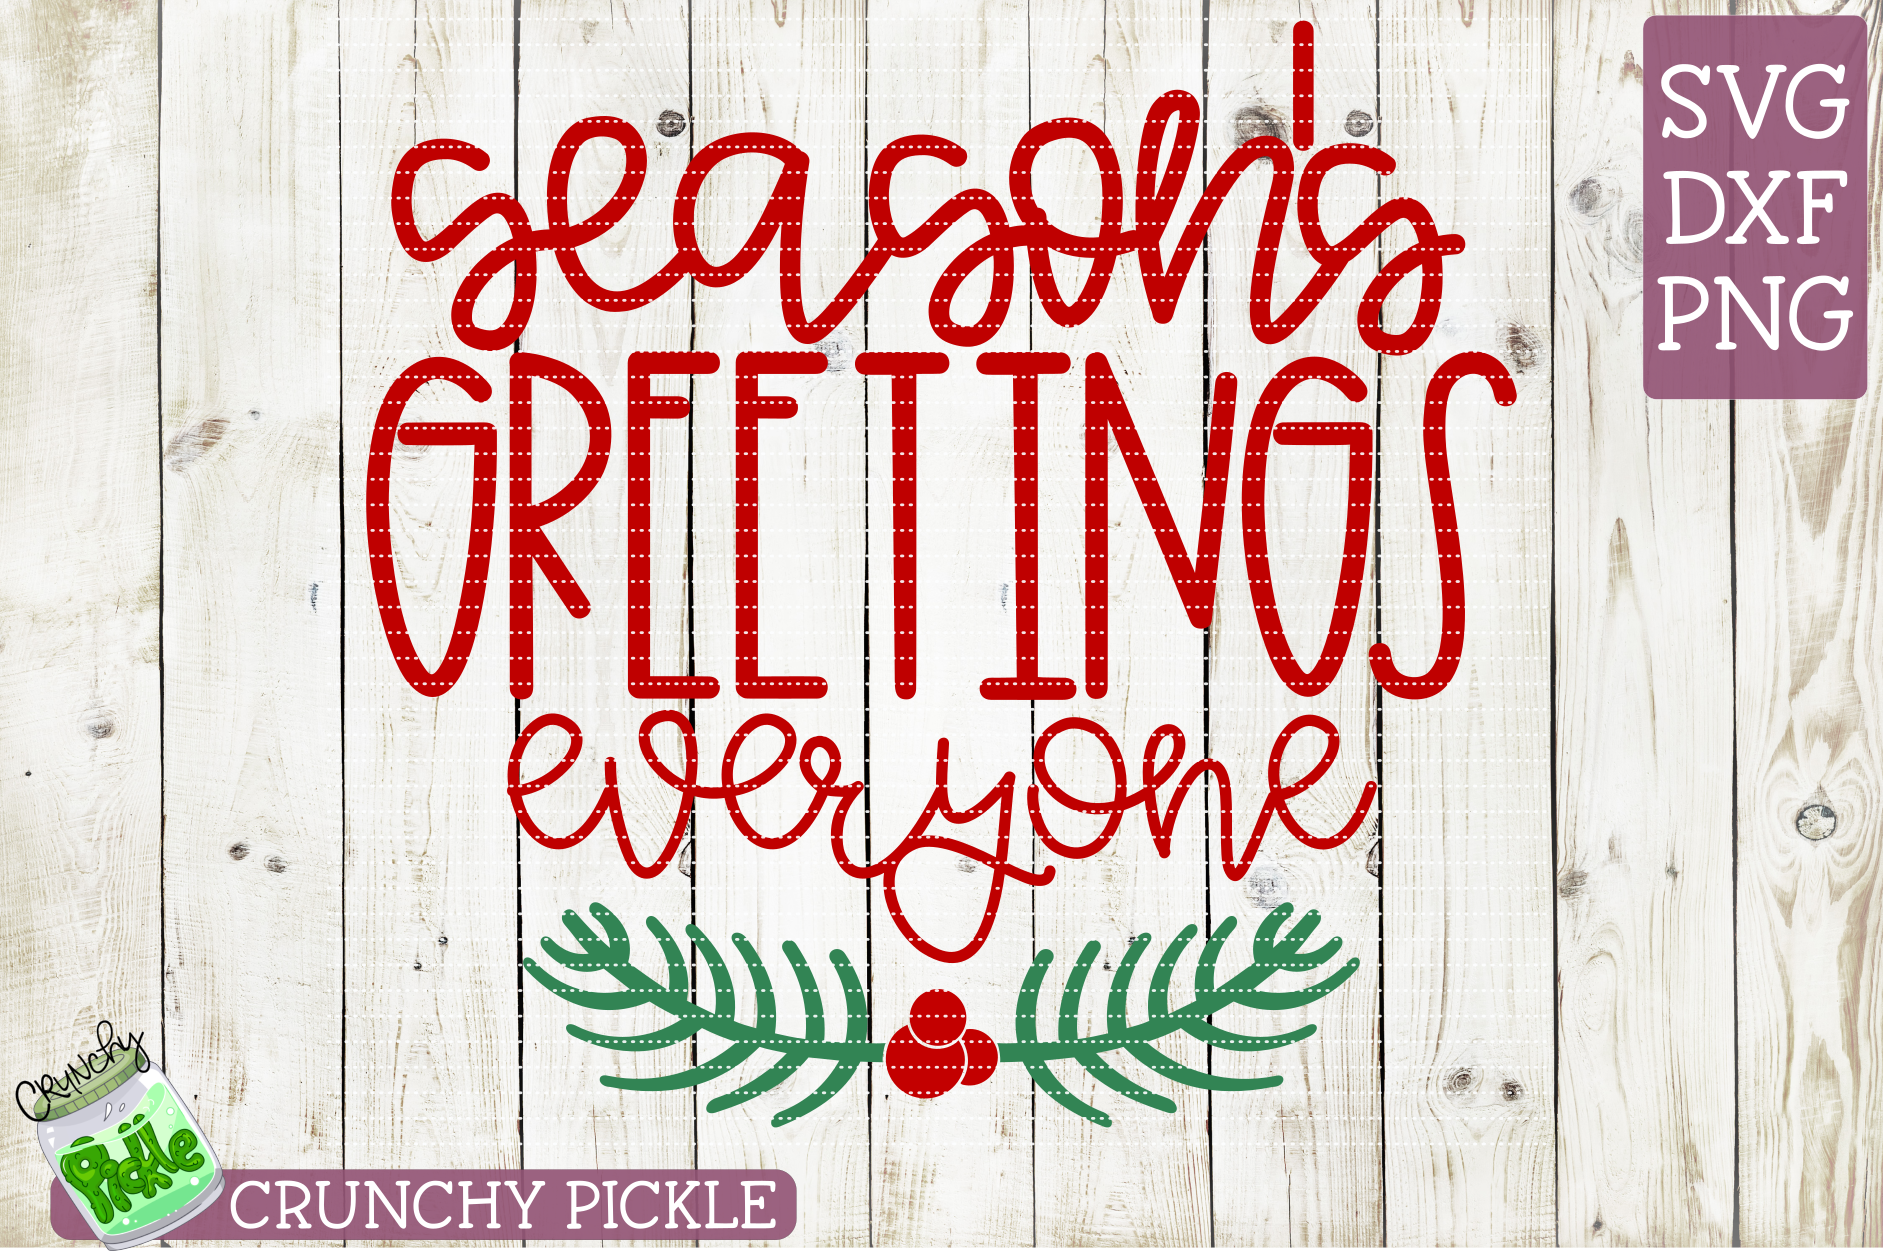 Season's Greetings Everyone SVG example image 2